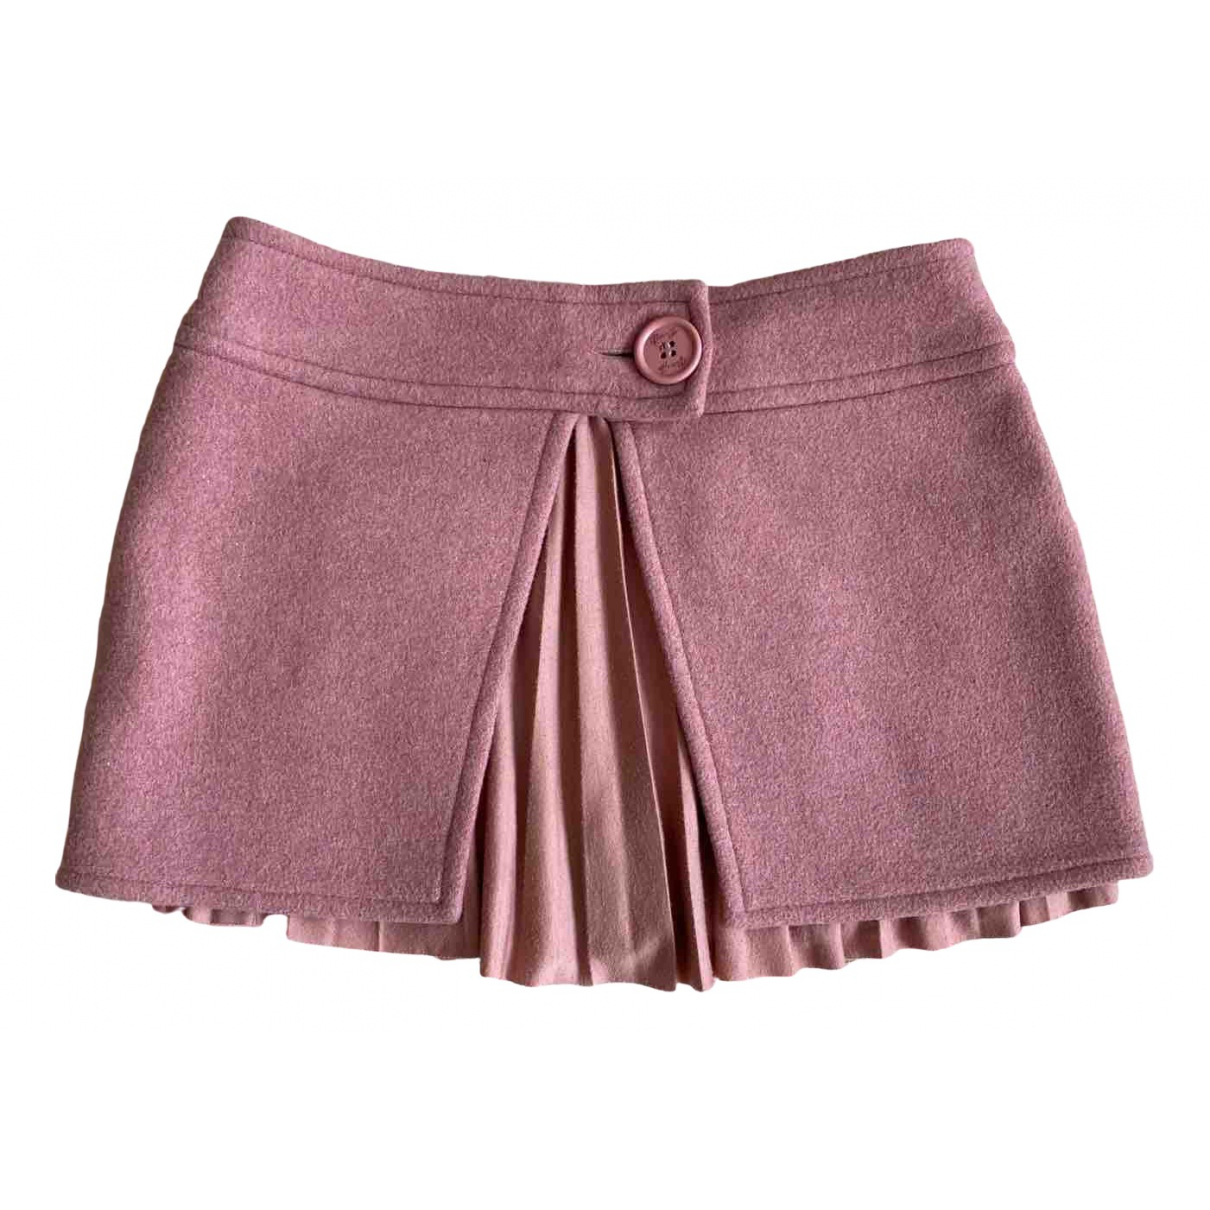 Liu.jo \N Pink Wool skirt for Women 42 IT